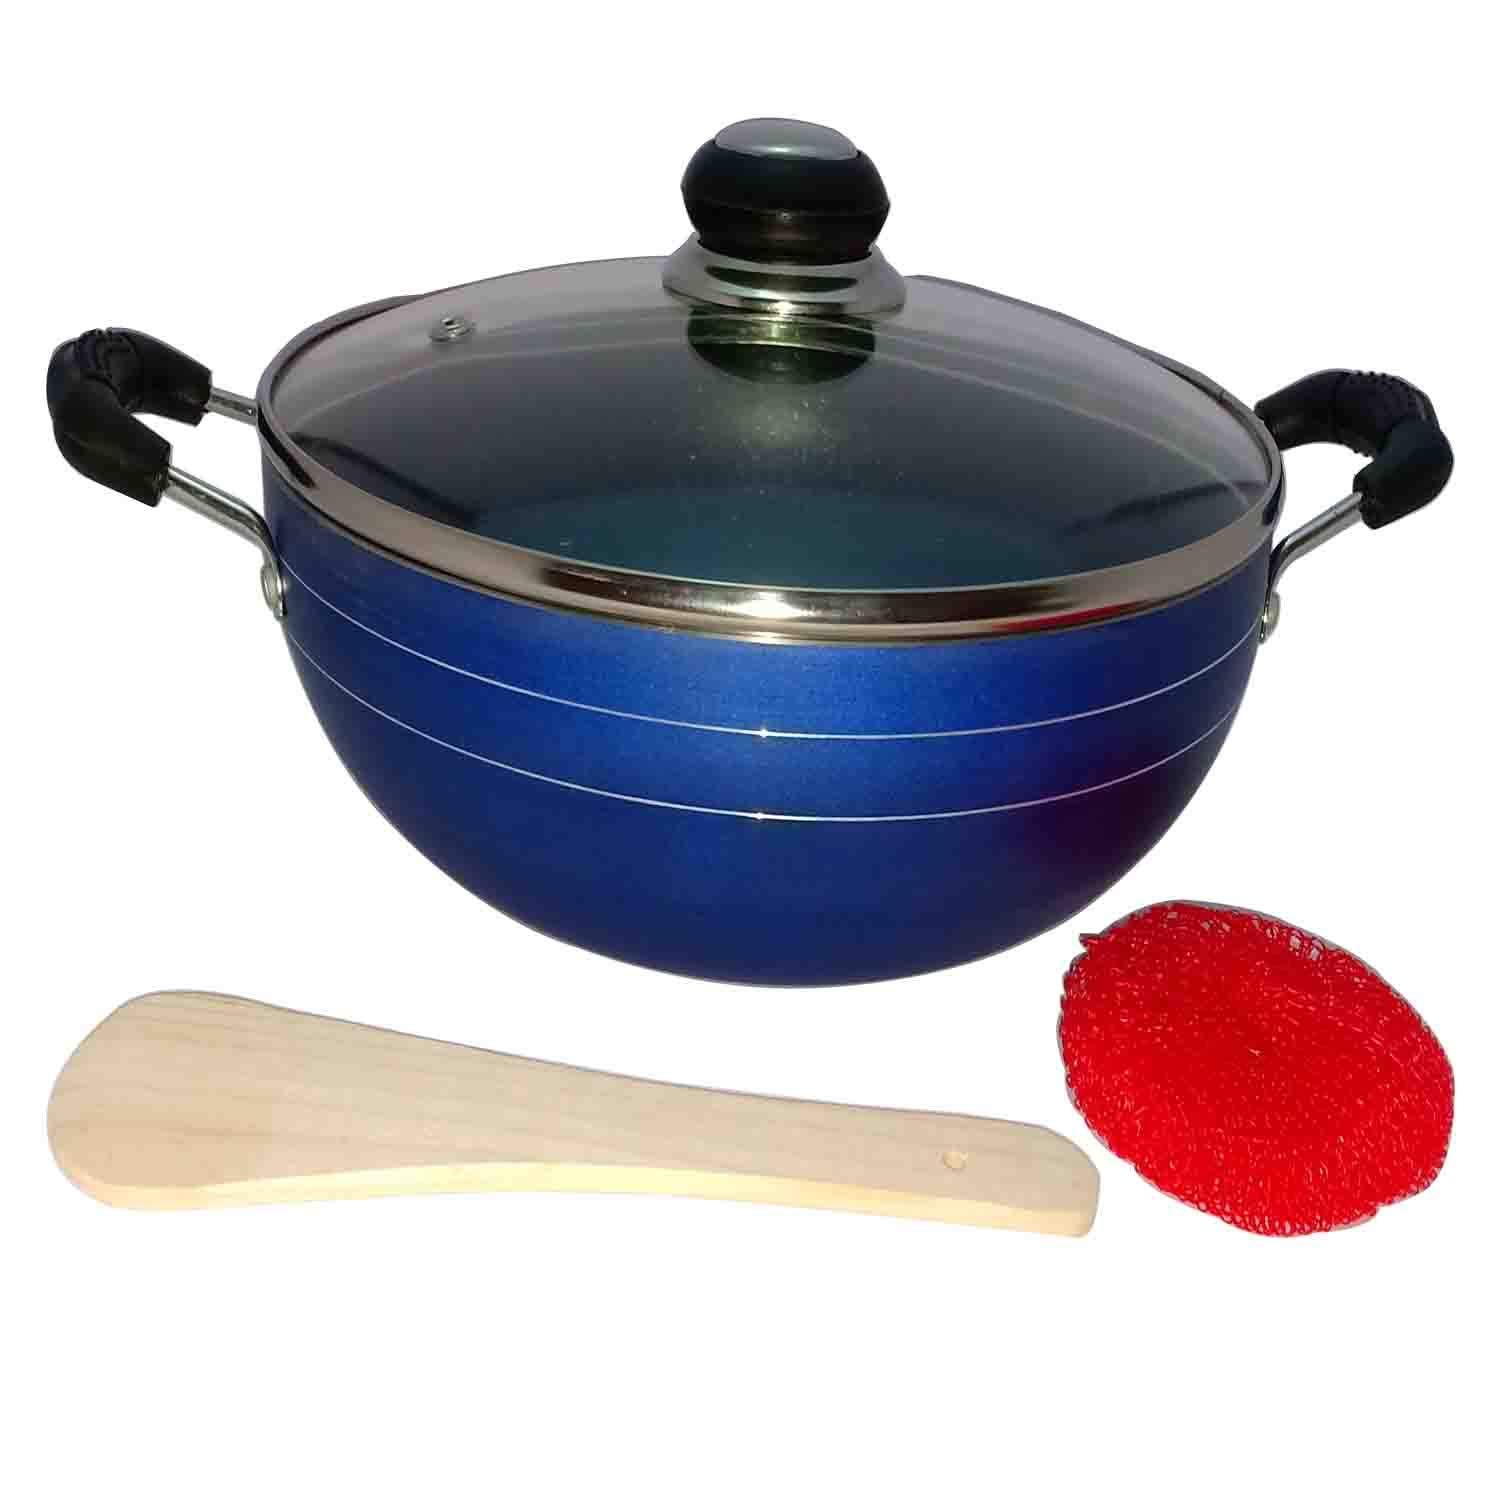 Hard Anodized Deep Kadai Non-Stick Aluminium Kadhai Deep Fry Pan Nonstick 2.2 Litre Kadhai with Glass Lid 240 mm (Induction and Gas Compatible)